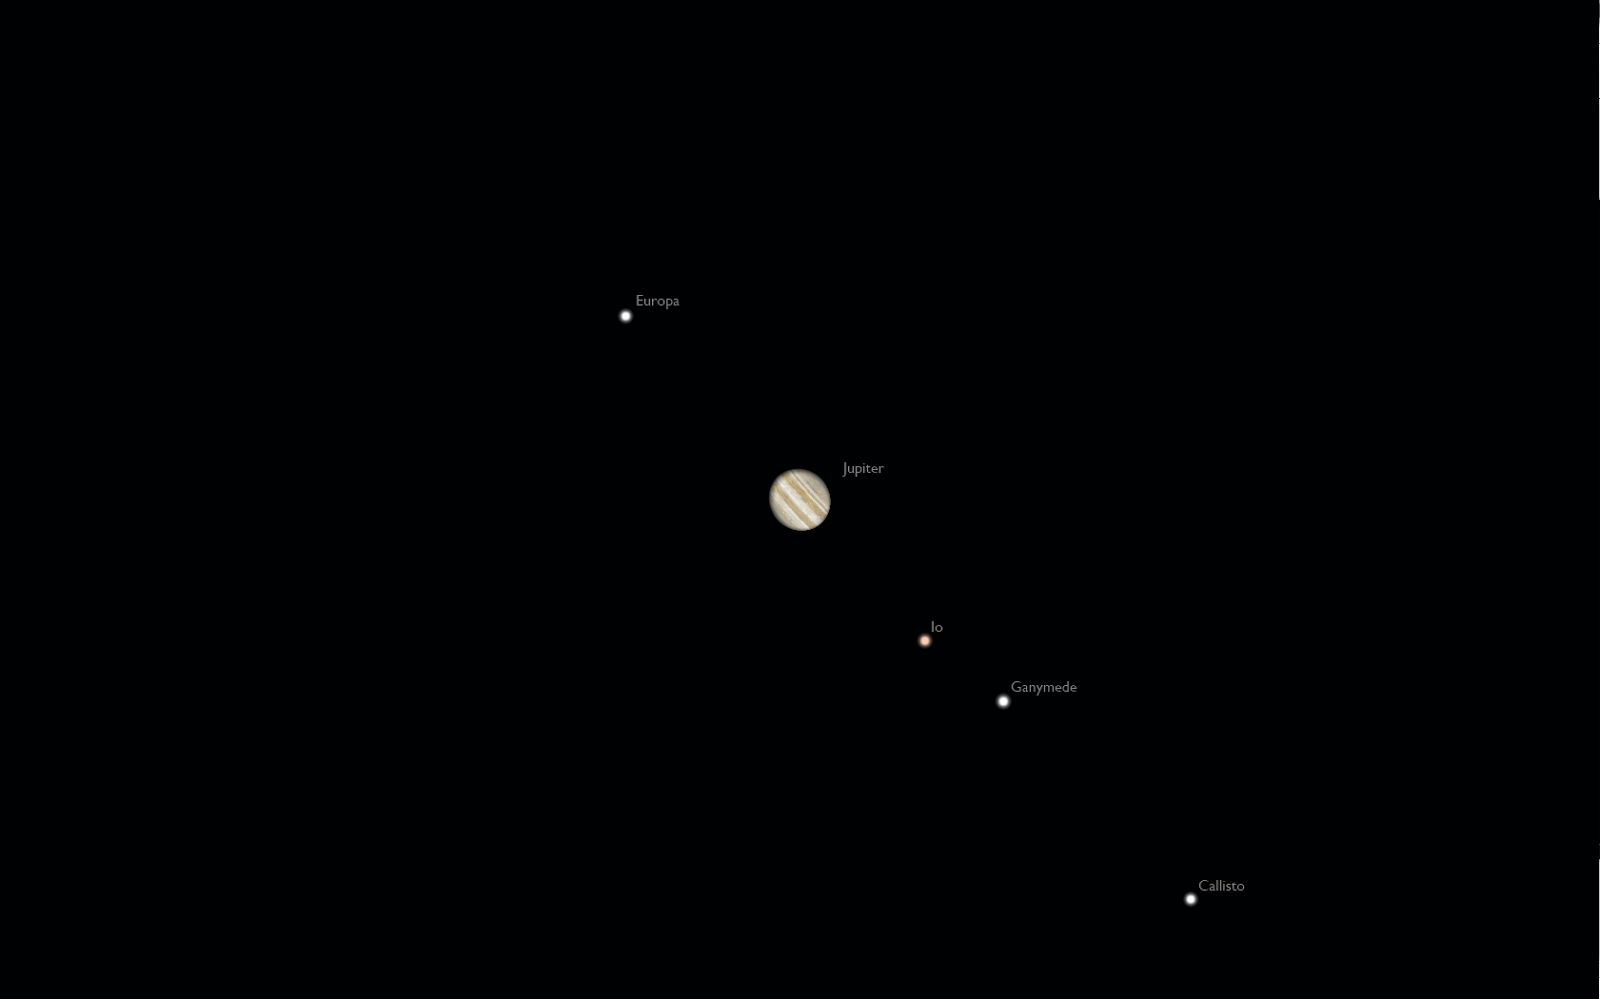 jupiter and its galilean moons Jupiter has numerous moons, which make the jovian system much like a miniature solar system the four largest — io, europa, ganymede and callisto — were discovered by galileo in 1610 and are known as the galilean satellites the other, smaller moons have their orbits either between jupiter and io, or outside the.